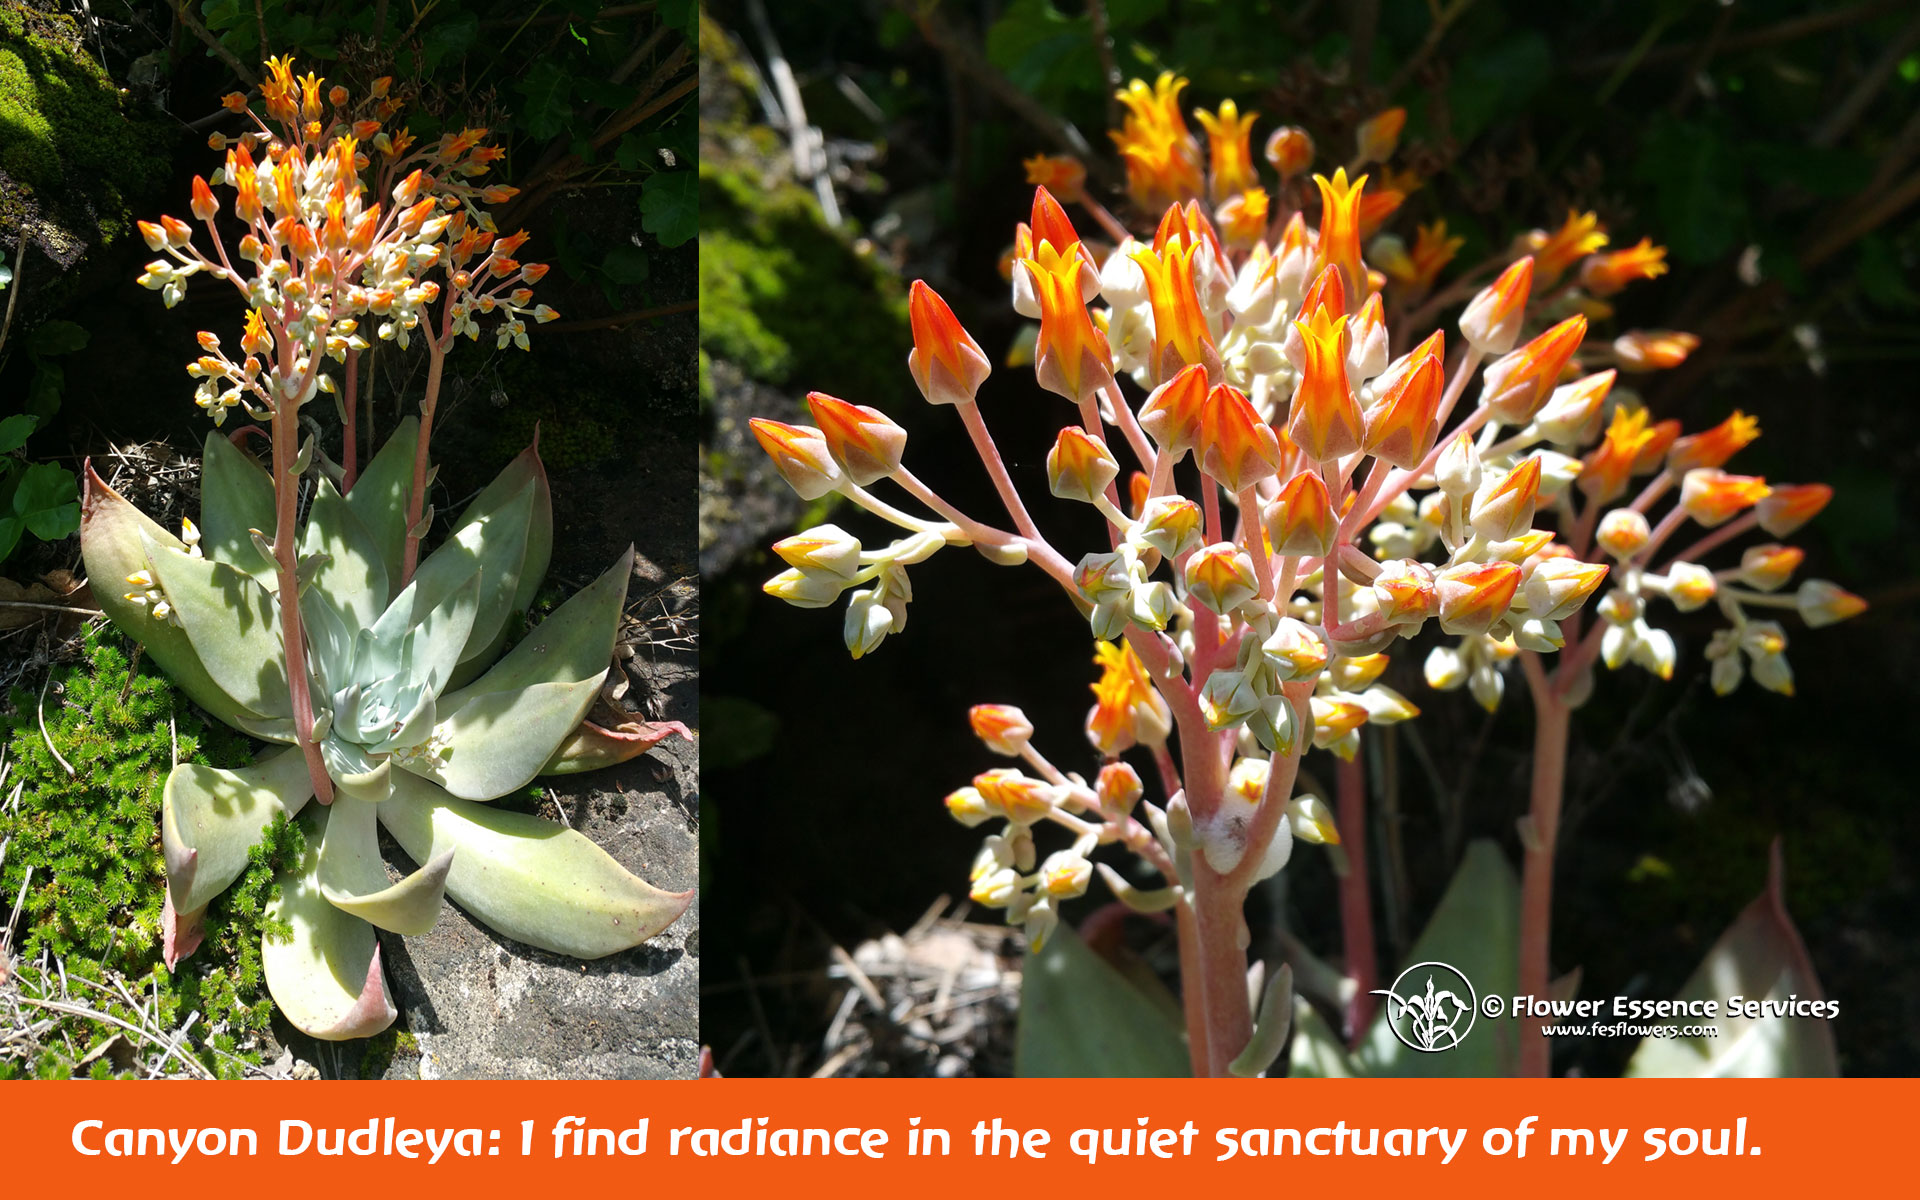 Canyon Dudleya for Balancing Fire and Water Elements: Finding Joy In Simplicity